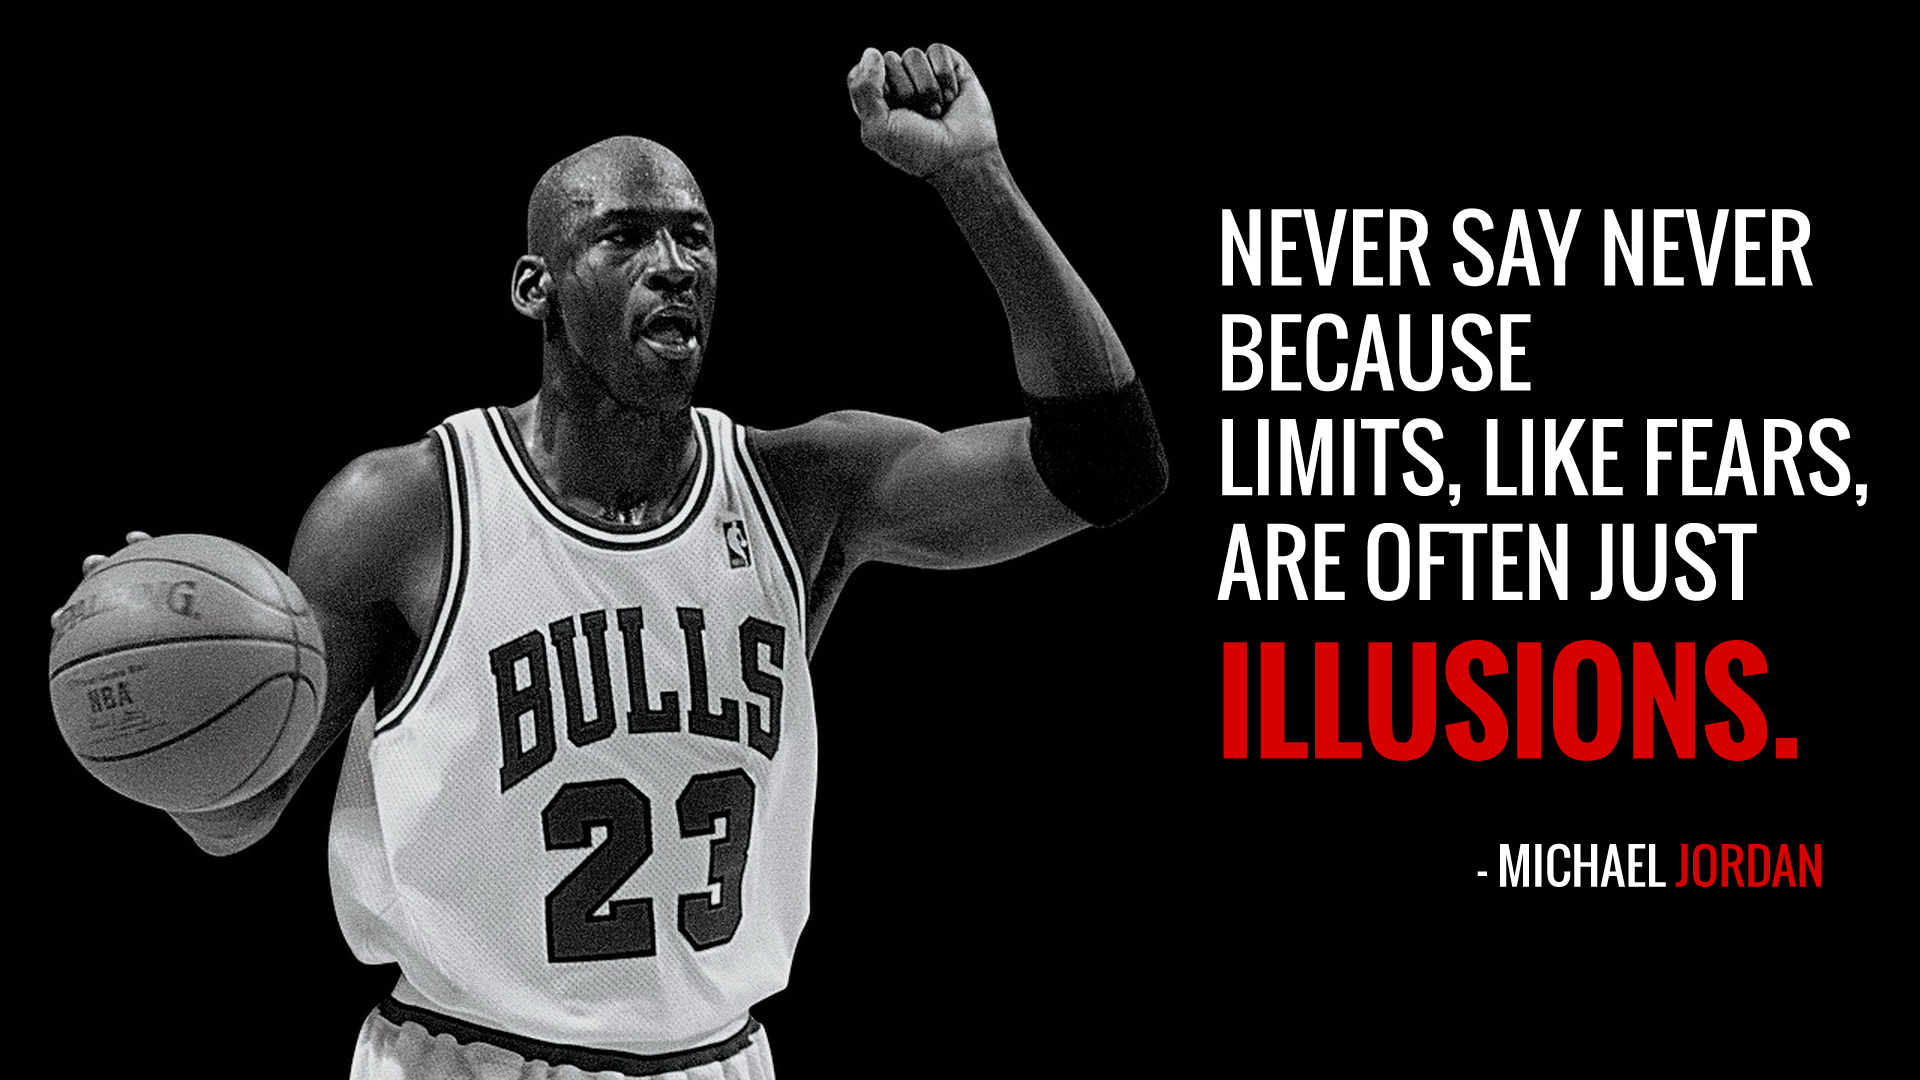 quotes inspirational sports jordan michael never say limits fears often because lift illusions